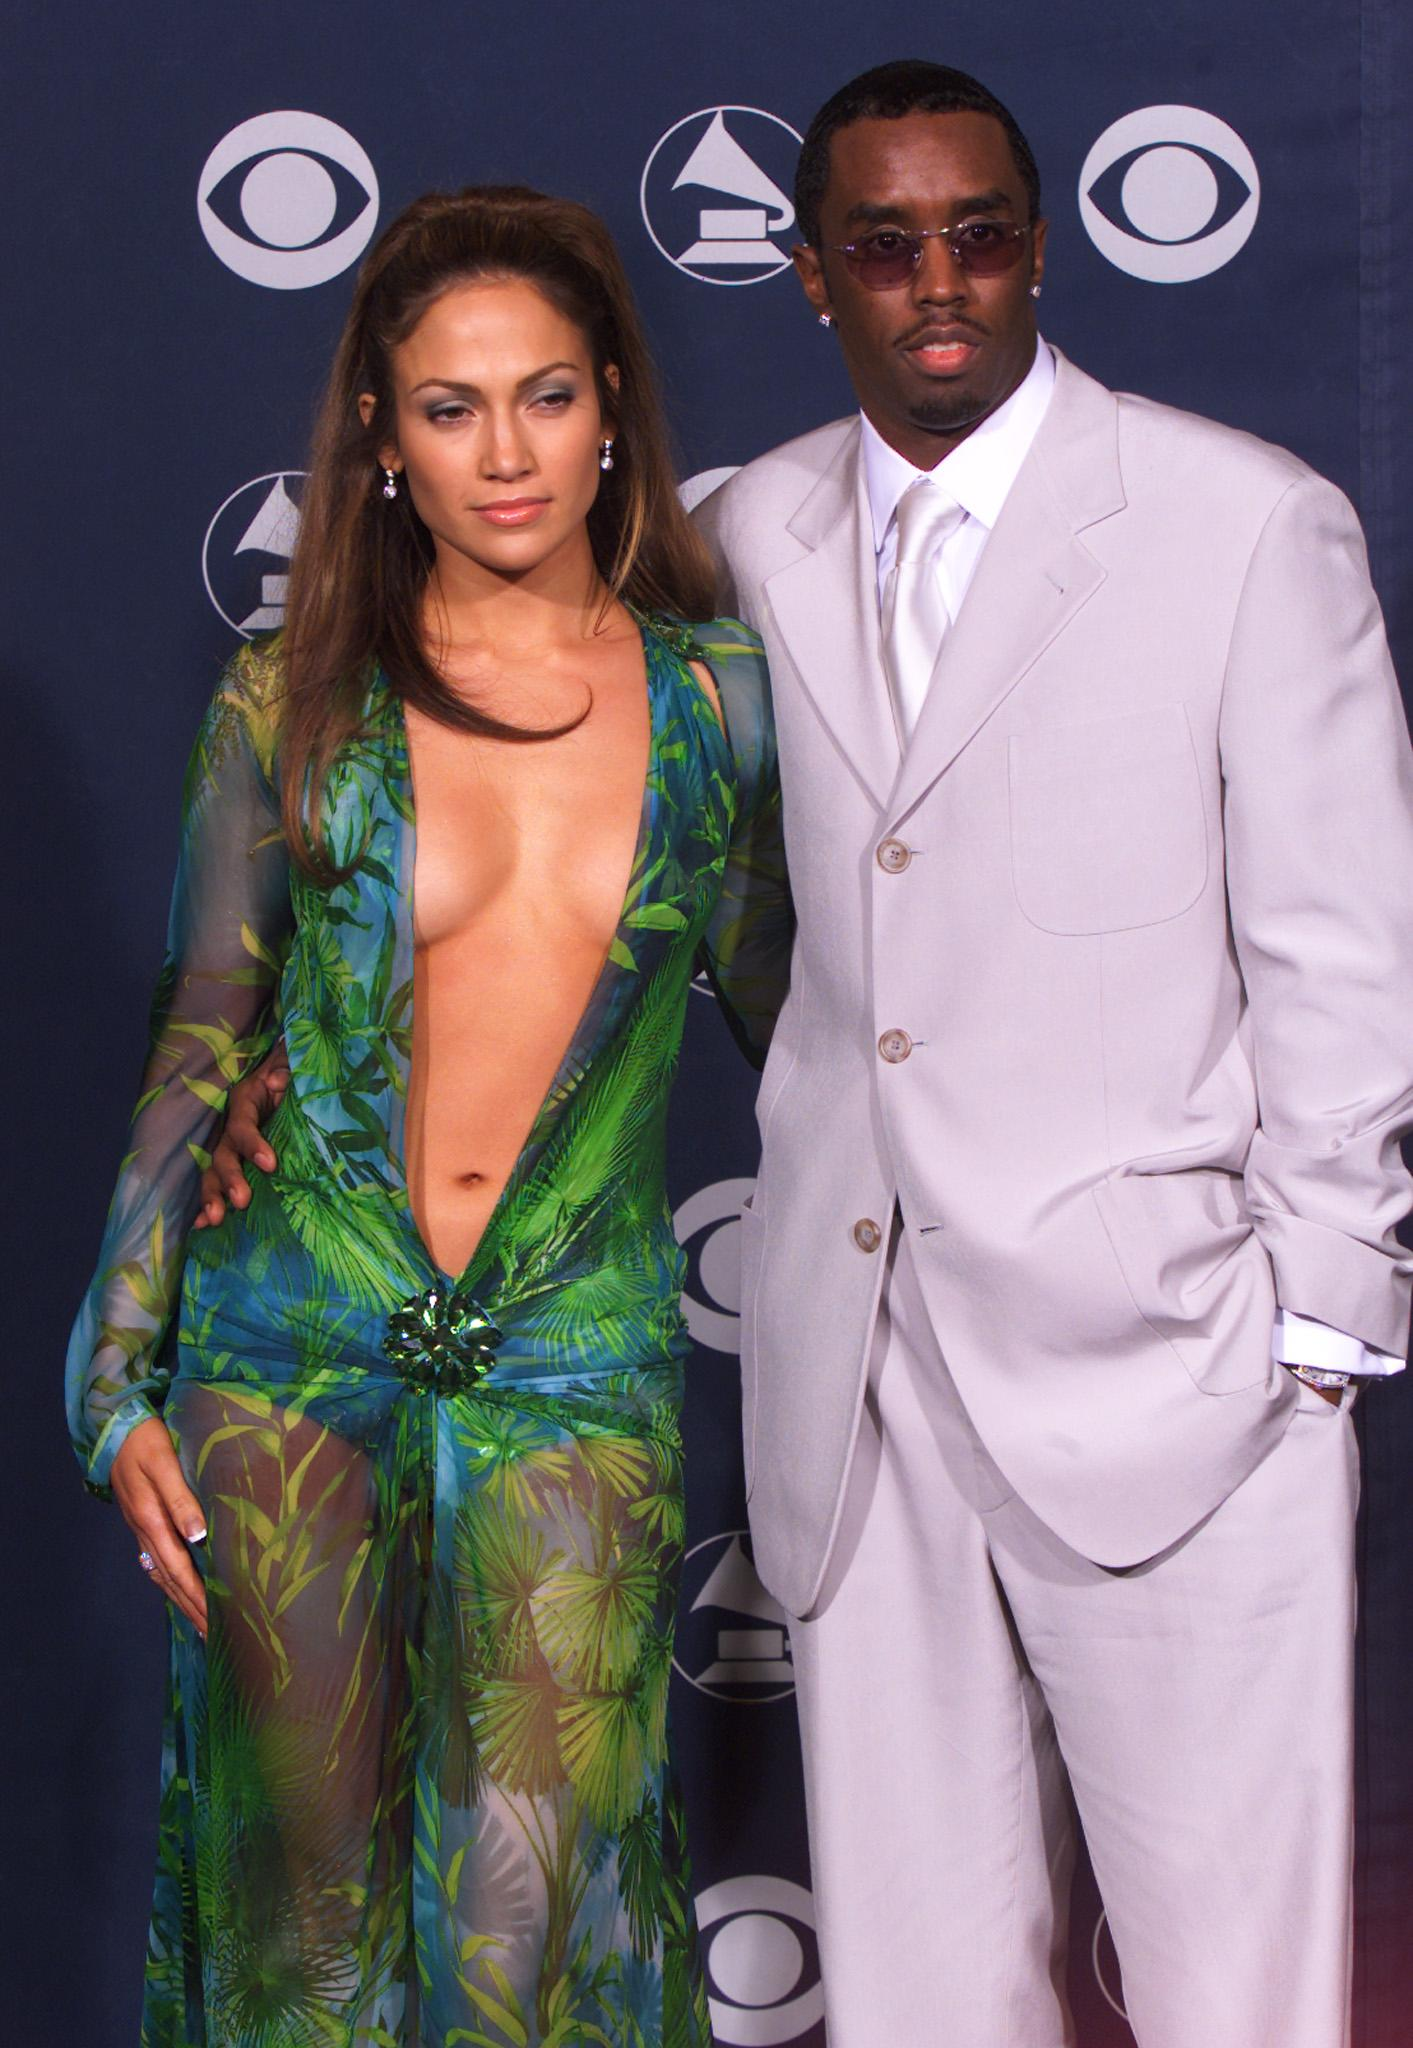 """Jennifer Lopez was dating Sean """"Diddy"""" Combs in 2000, the year she made a splash at the Grammys in a green Versace dress. (Photo: Reuters)"""